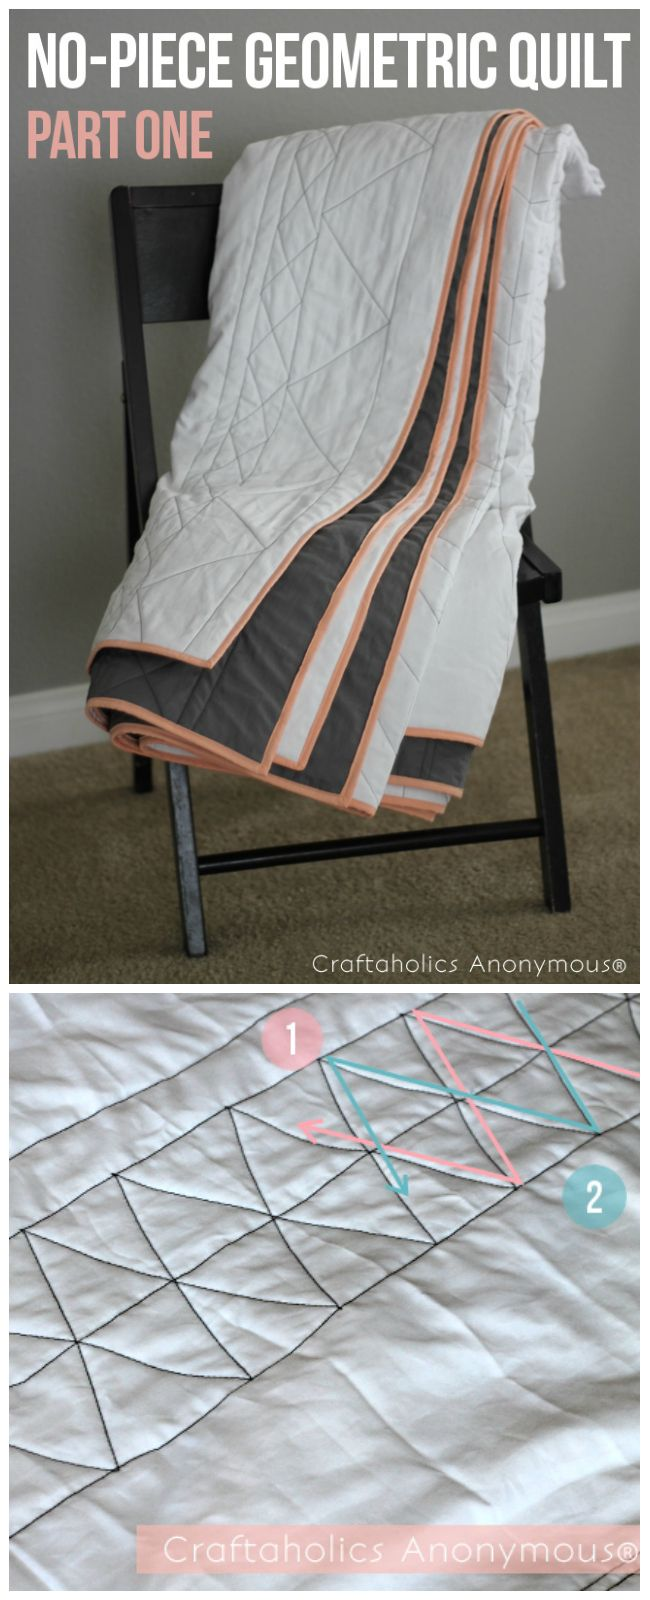 Geometric Quilt Tutorial. Easy, no-piece quilt. Makes a great first quilt or a fun weekend project! #quilt #pattern